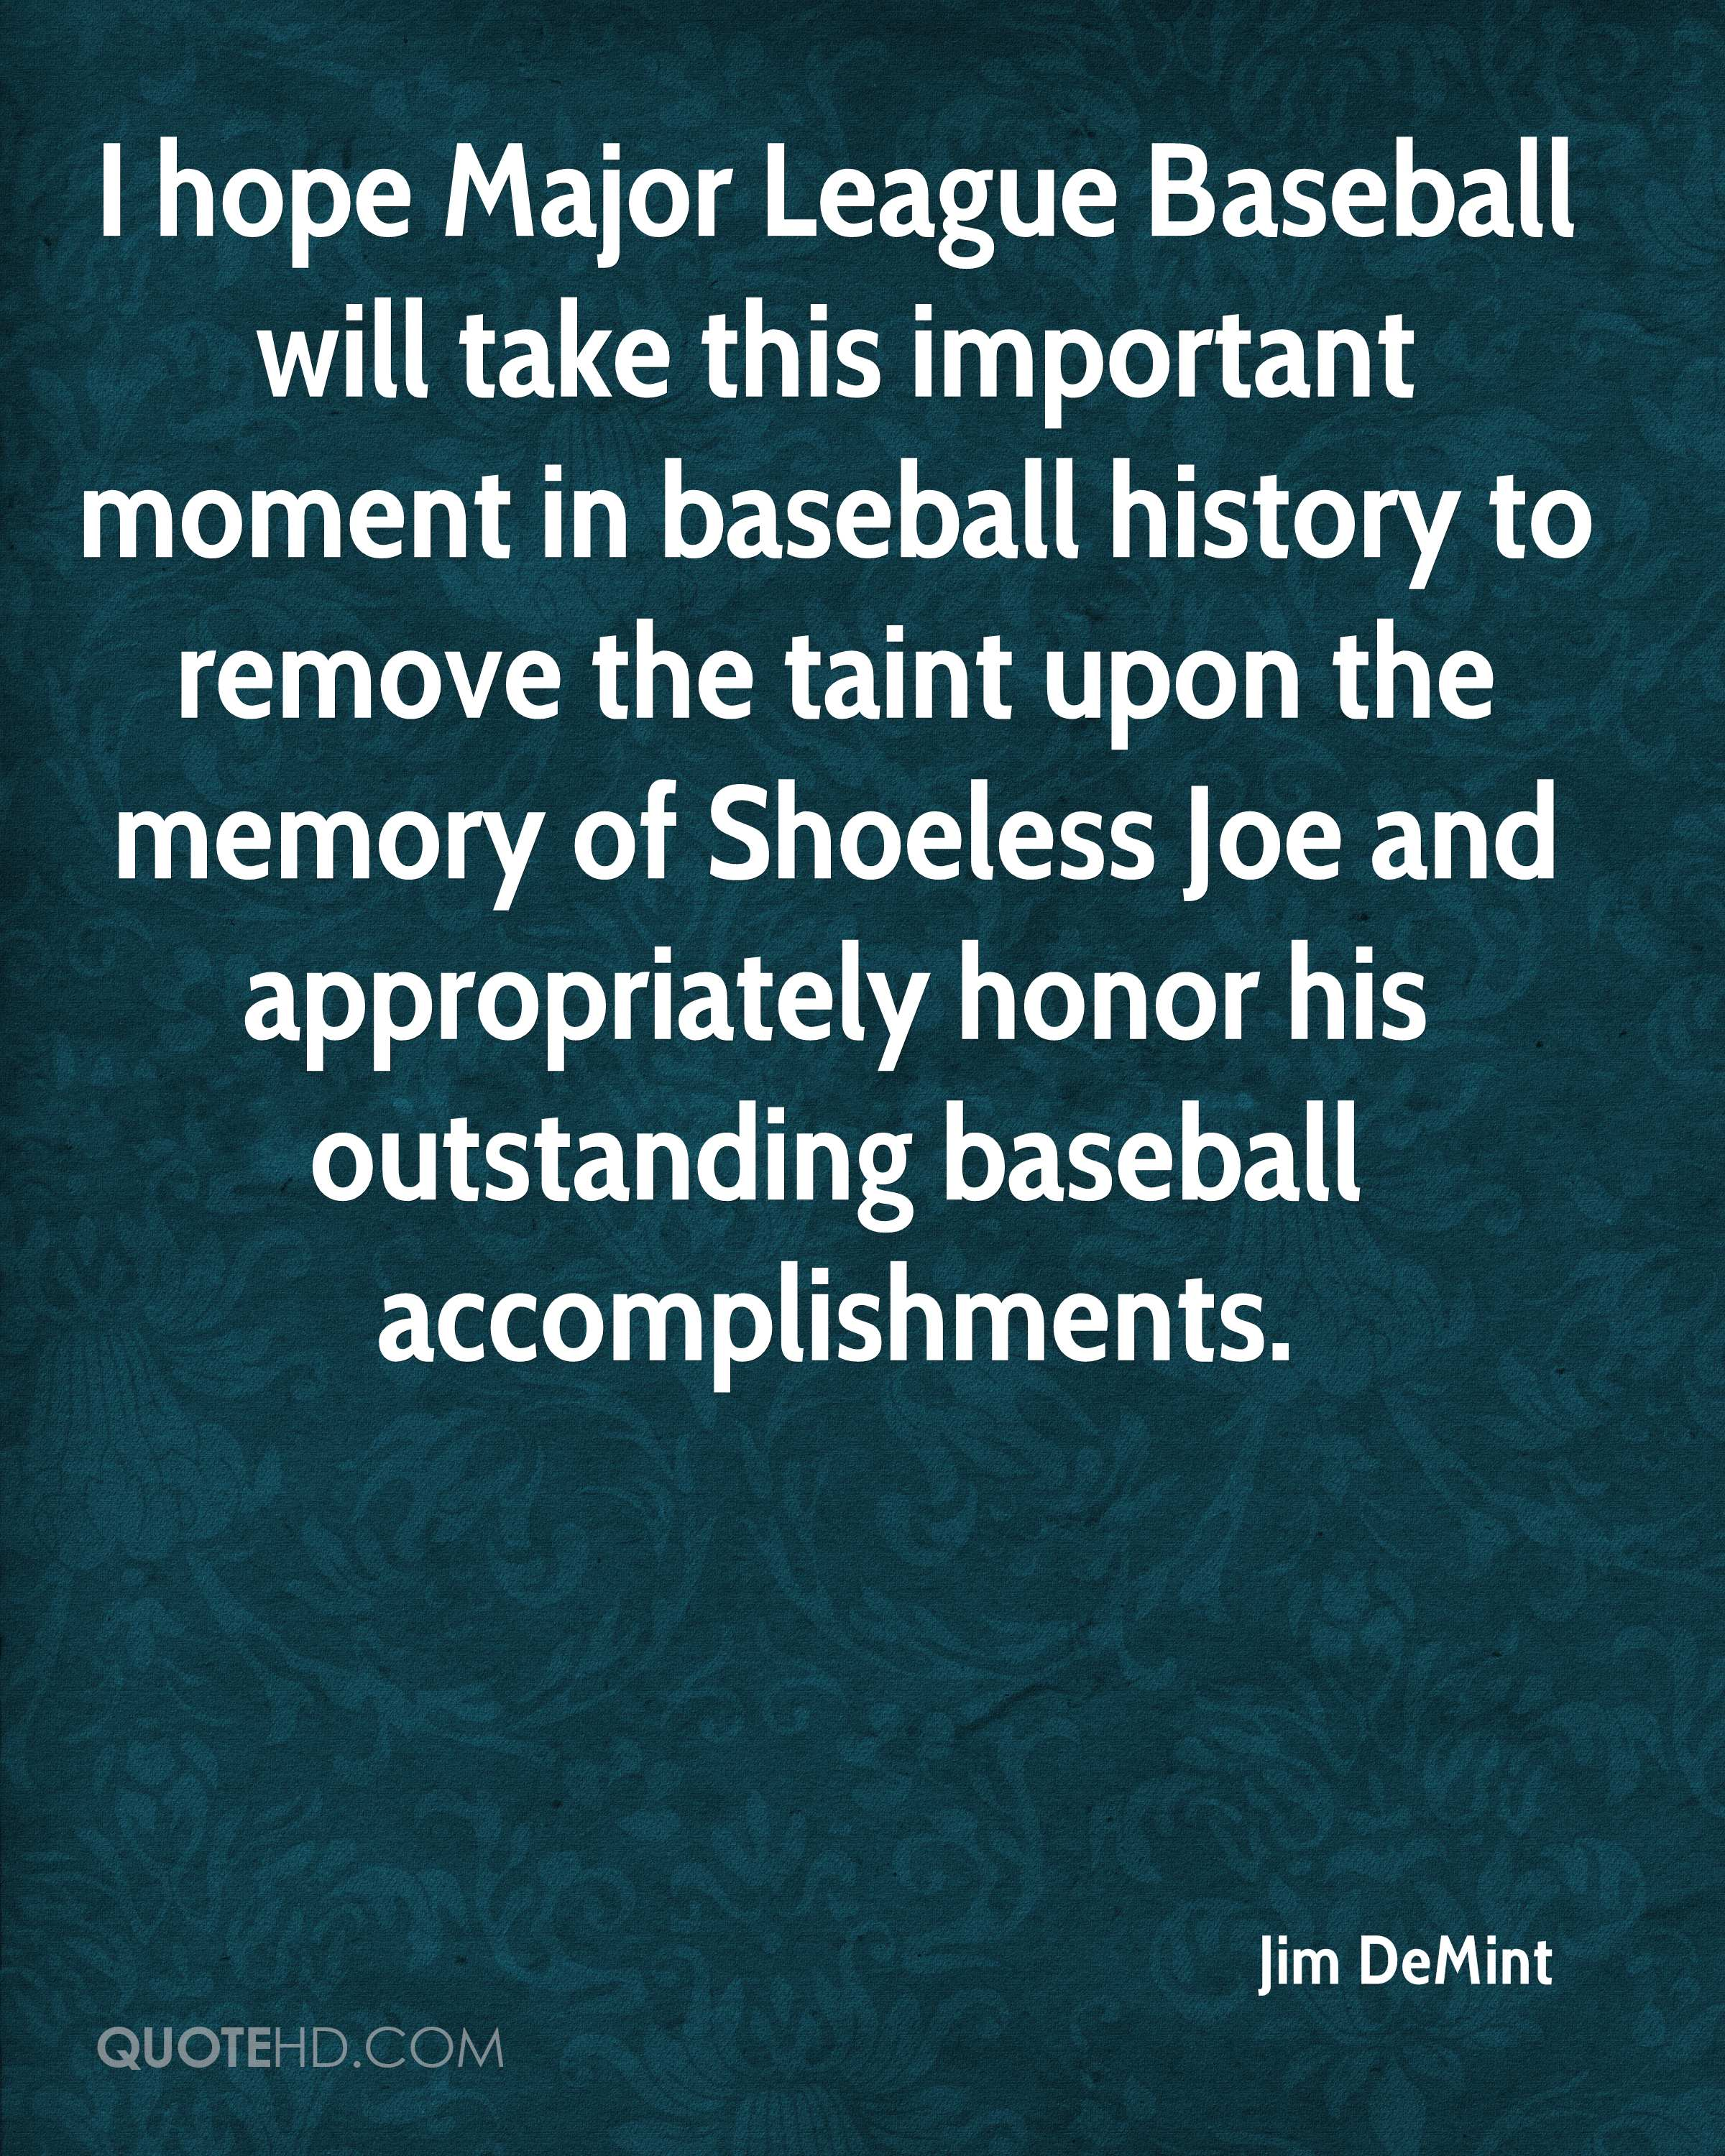 I hope Major League Baseball will take this important moment in baseball history to remove the taint upon the memory of Shoeless Joe and appropriately honor his outstanding baseball accomplishments.